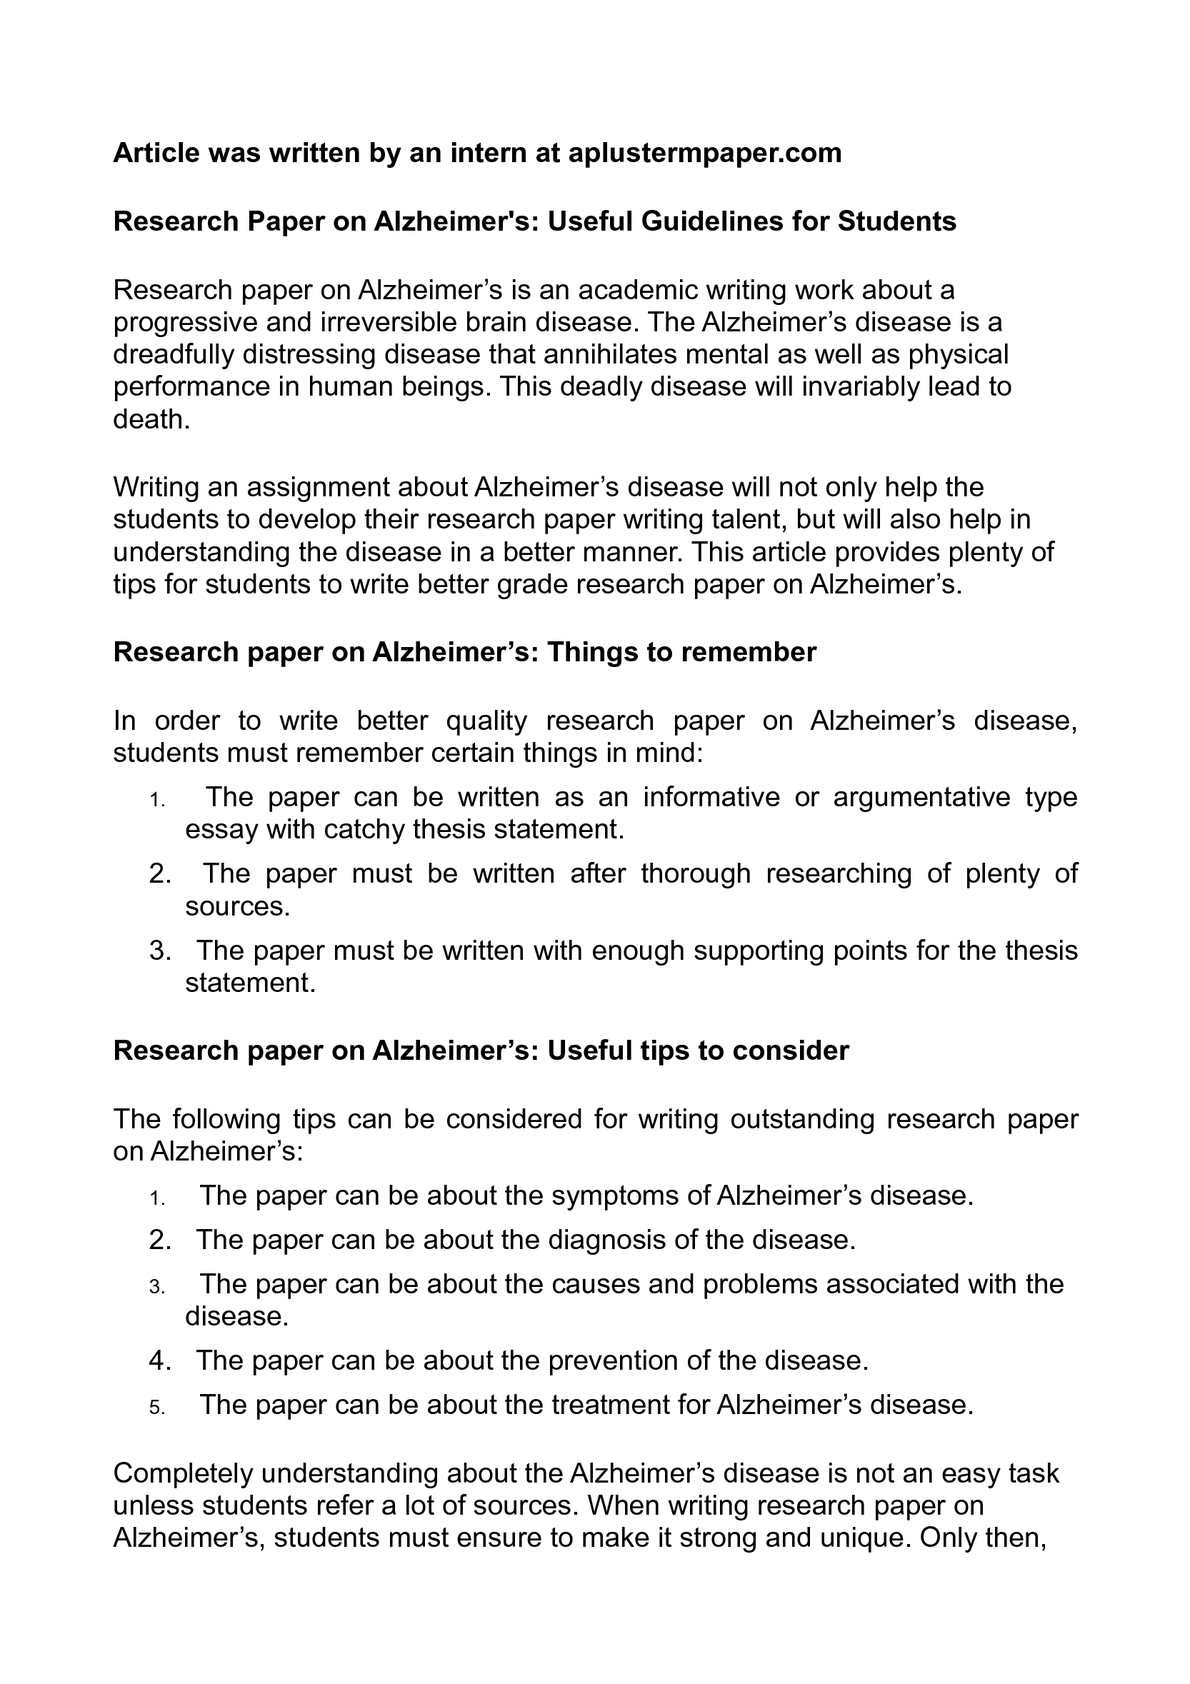 a good thesis statement for alzheimers disease